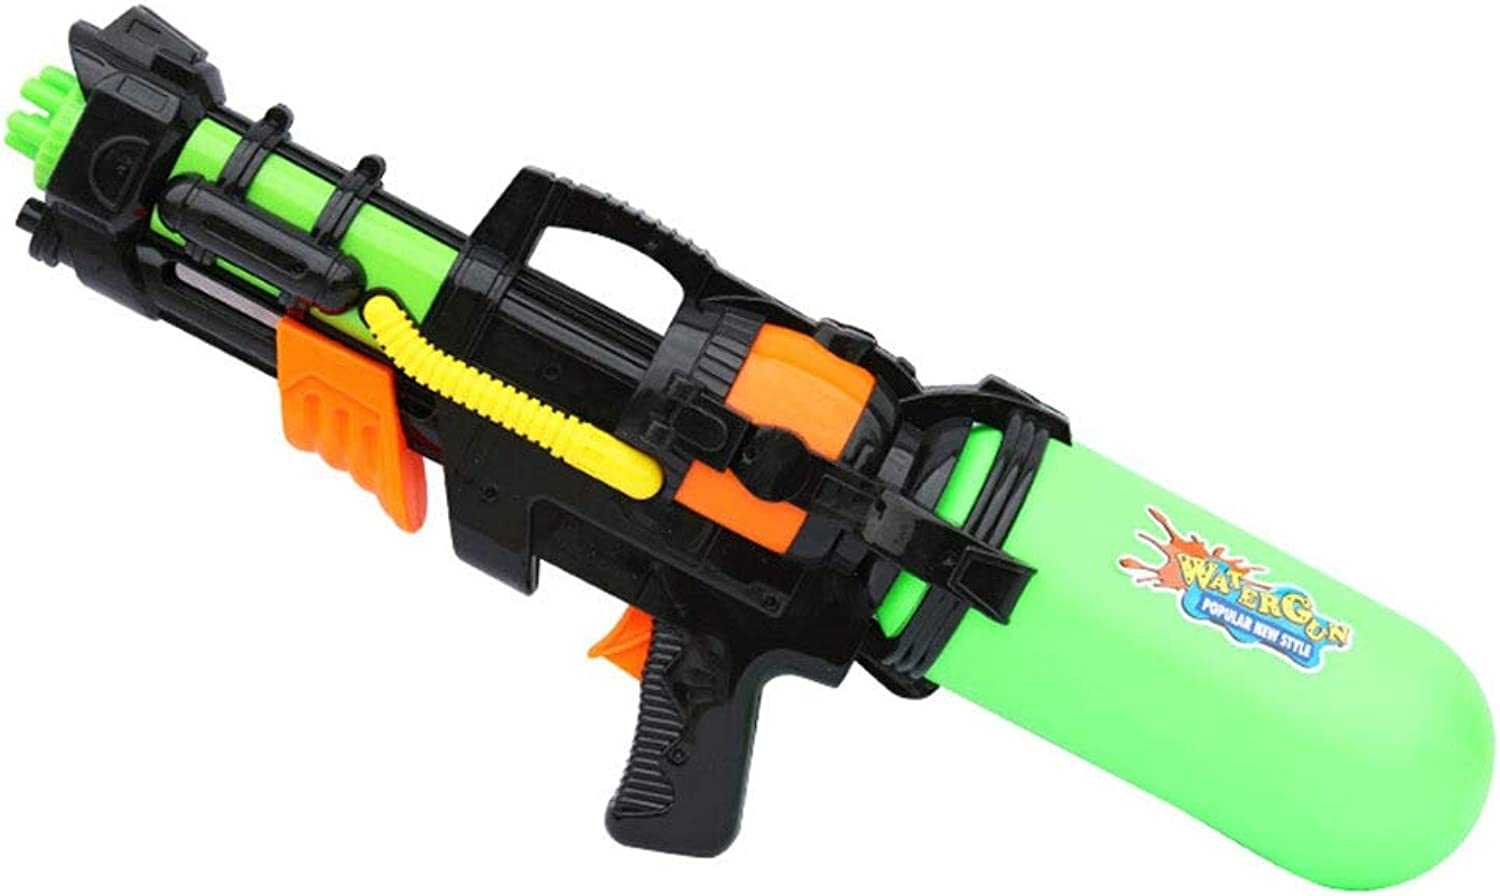 XLongtoy Classic Water Pistol Water Gun Super Soakers Water Blaster Toys for Kids and Adults 52CM Pulltype